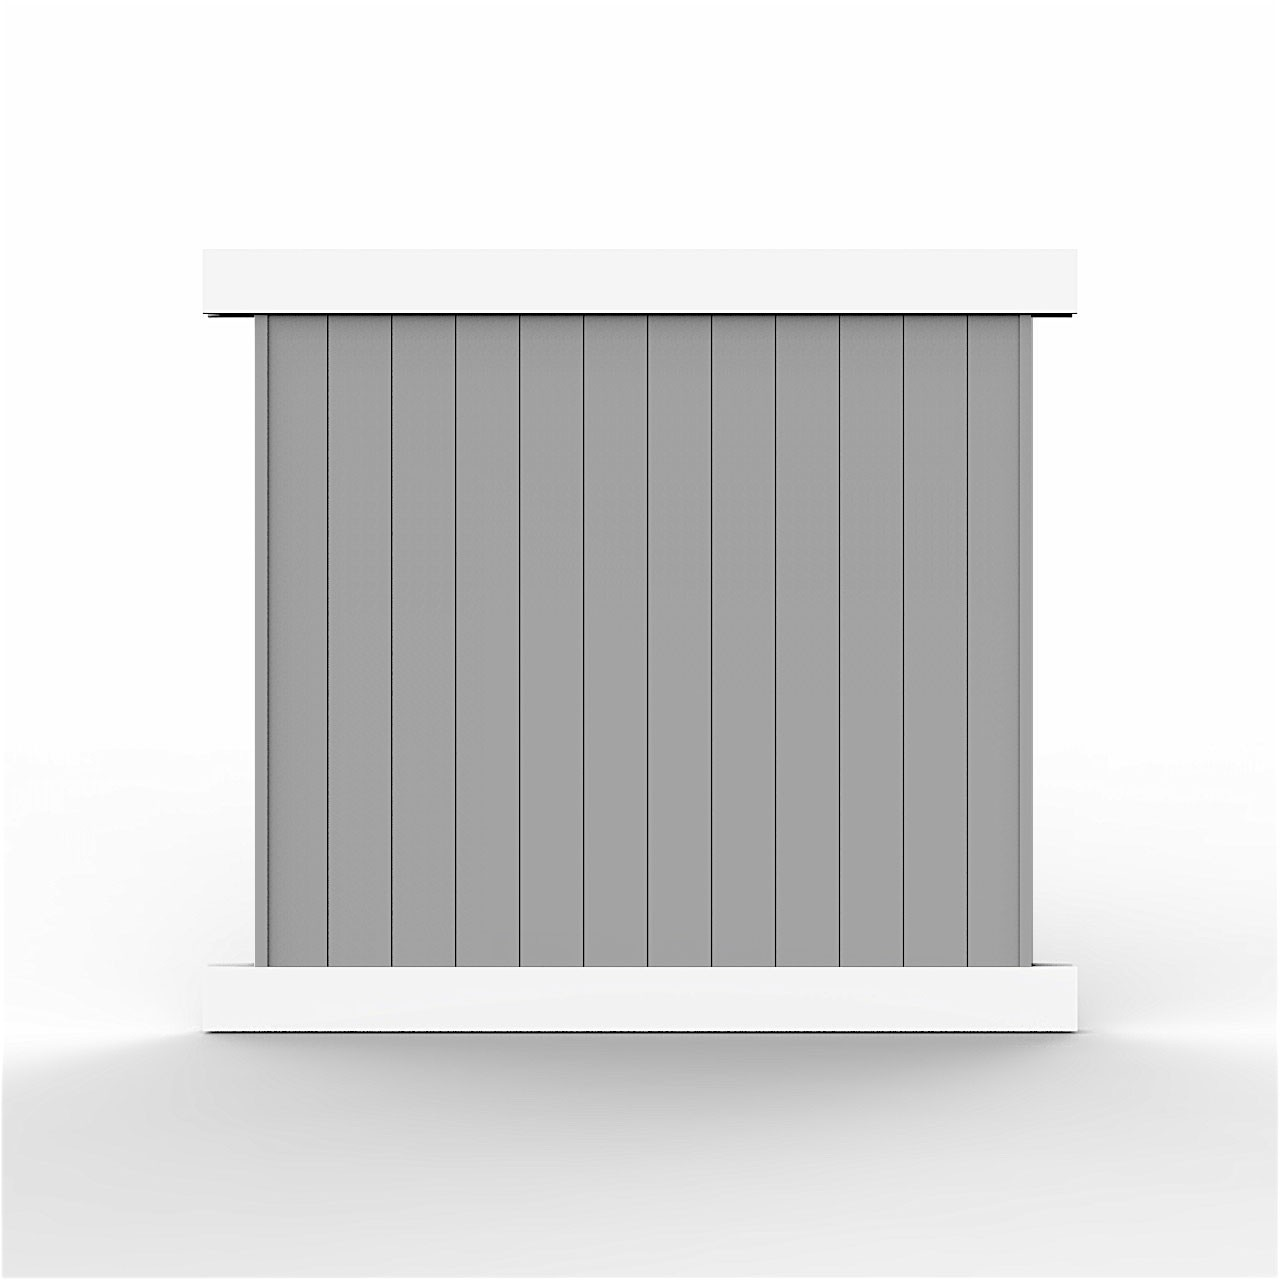 6' Tall Classic Privacy Two-Tone Gray w/ White Frame